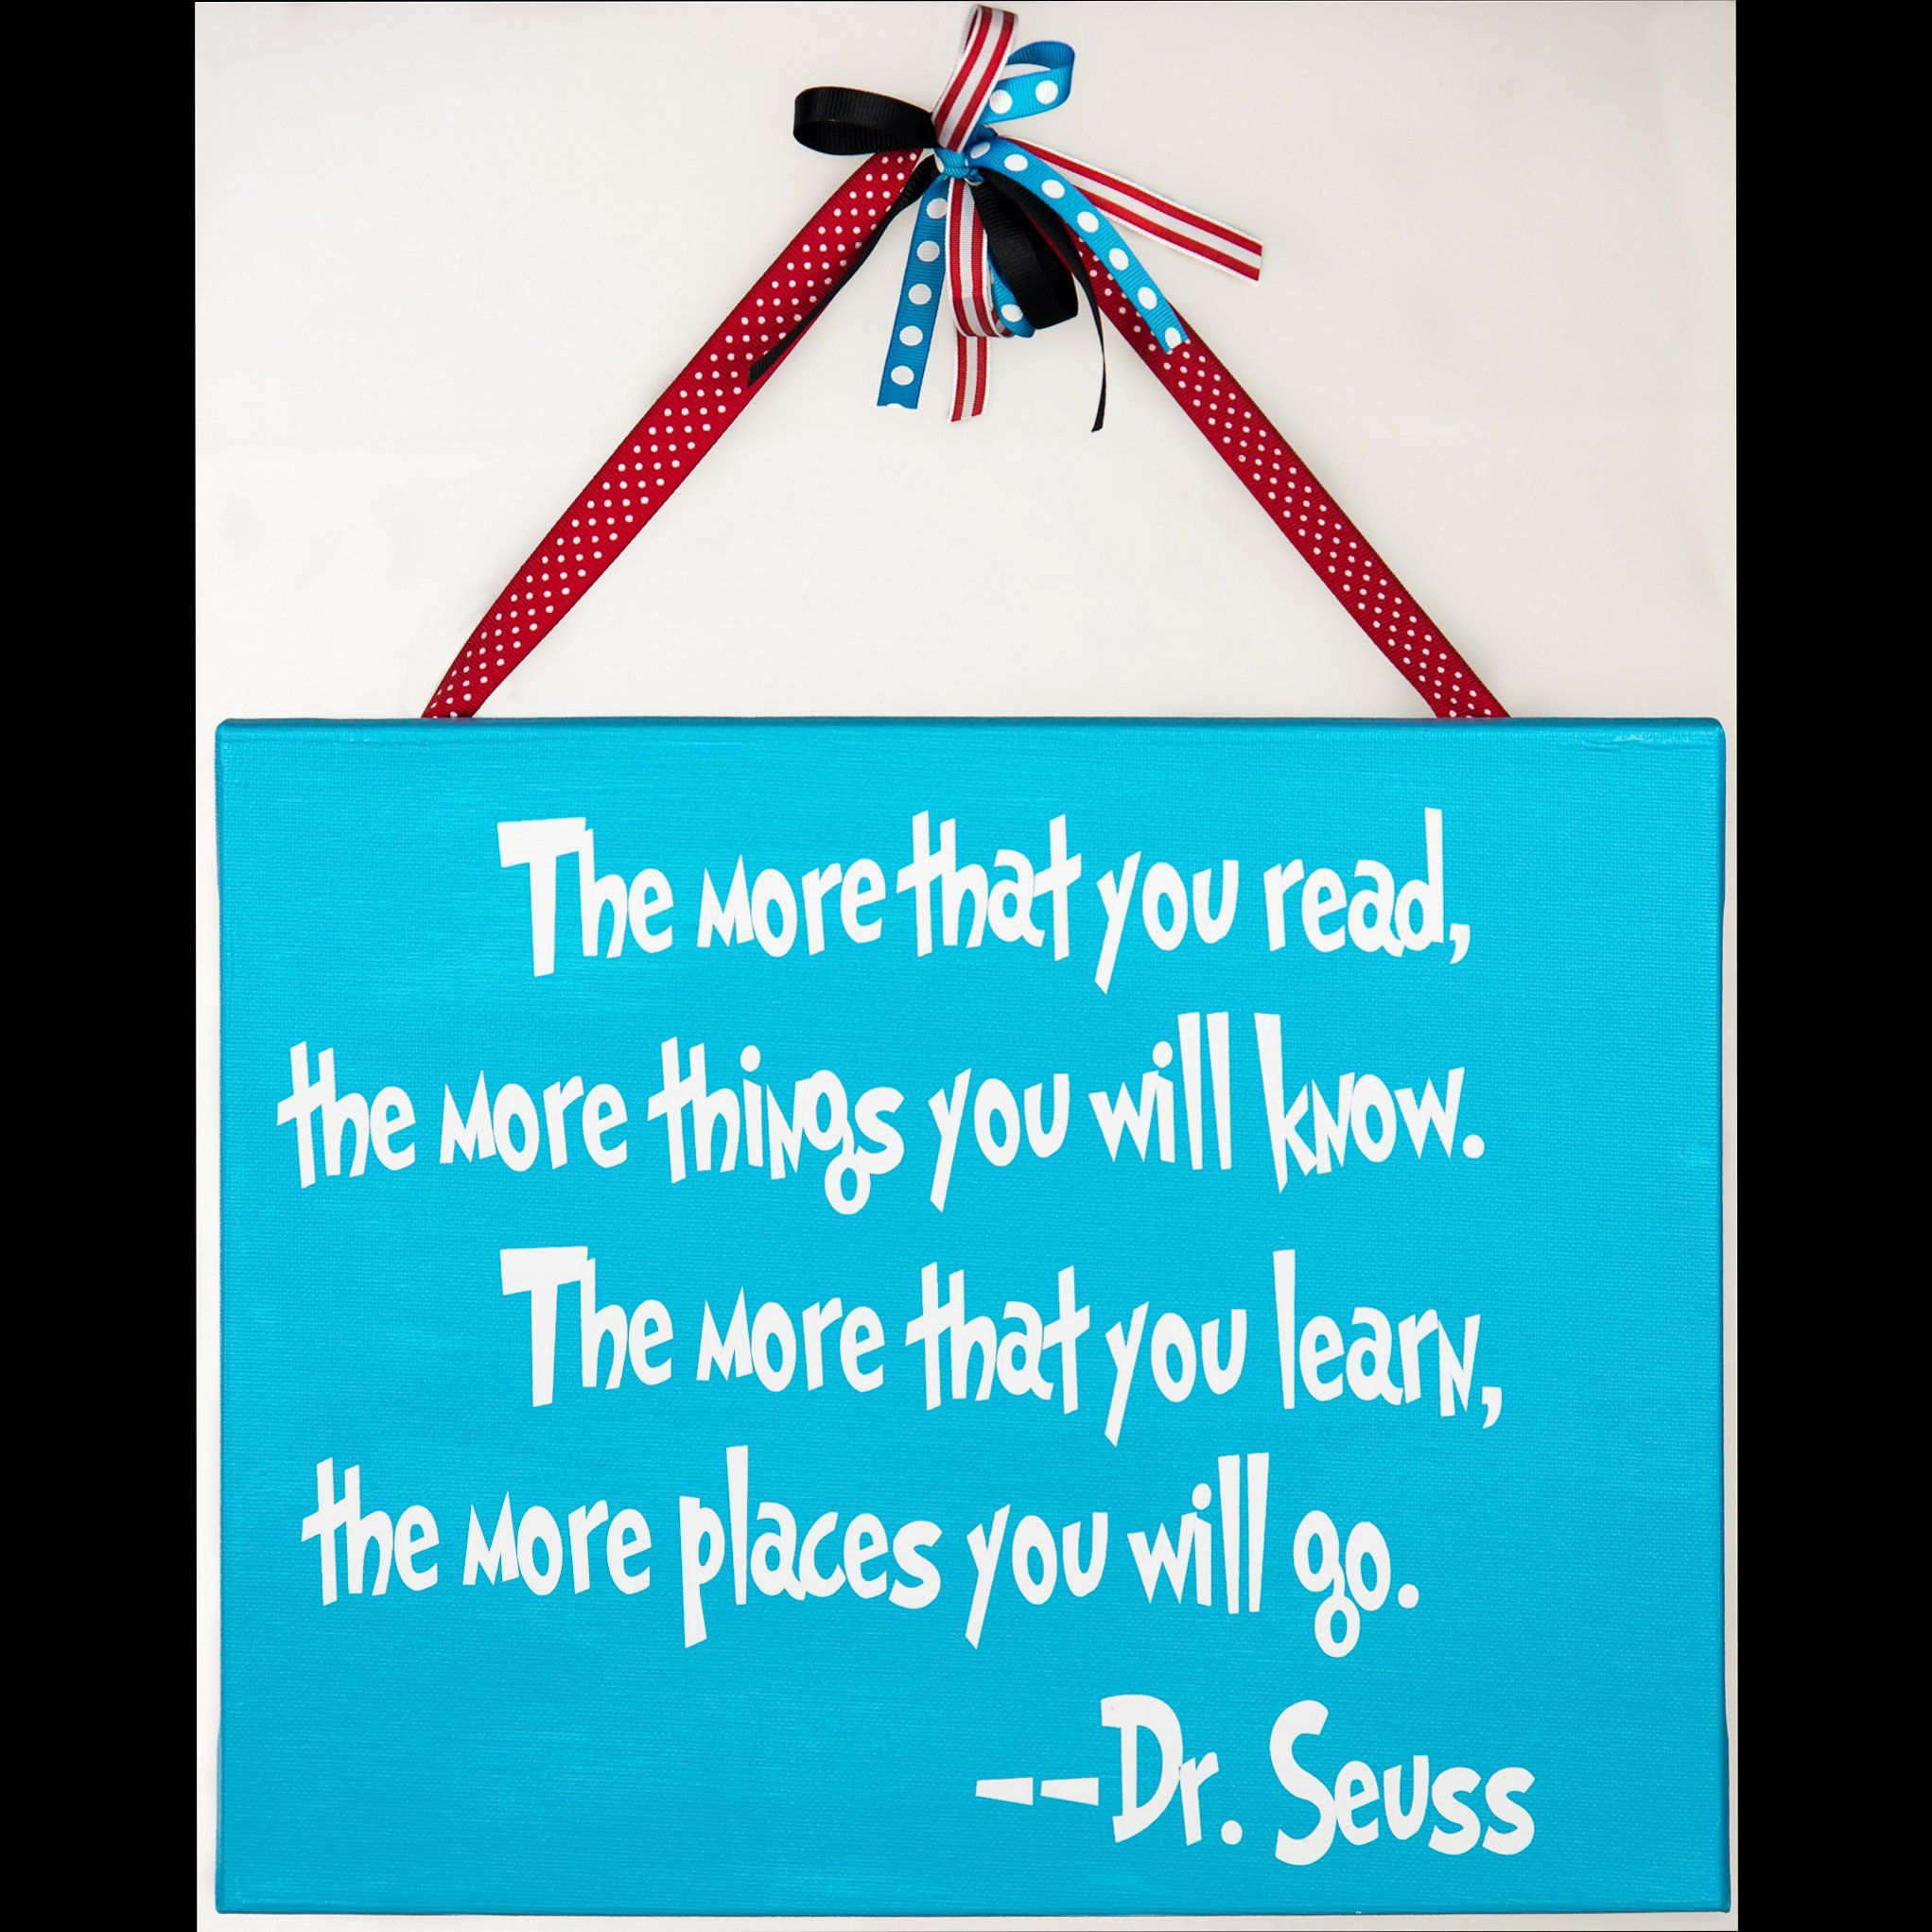 Dr Seuss Quotes Love Quotes On Canvas Original Painting 11x14: Dr. Seuss Quote (vinyl) On A Painted 11x14 Canvas I Made